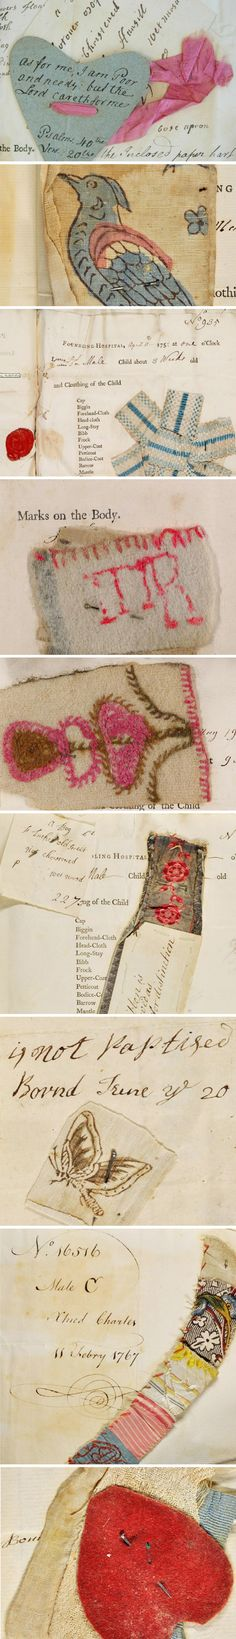 """Threads of Feeling"" ""Mid-18th century thousands of poor women deposited their newborn babies at the Foundling Hospital. The scraps of material left to identify them tell an extraordinary story"""